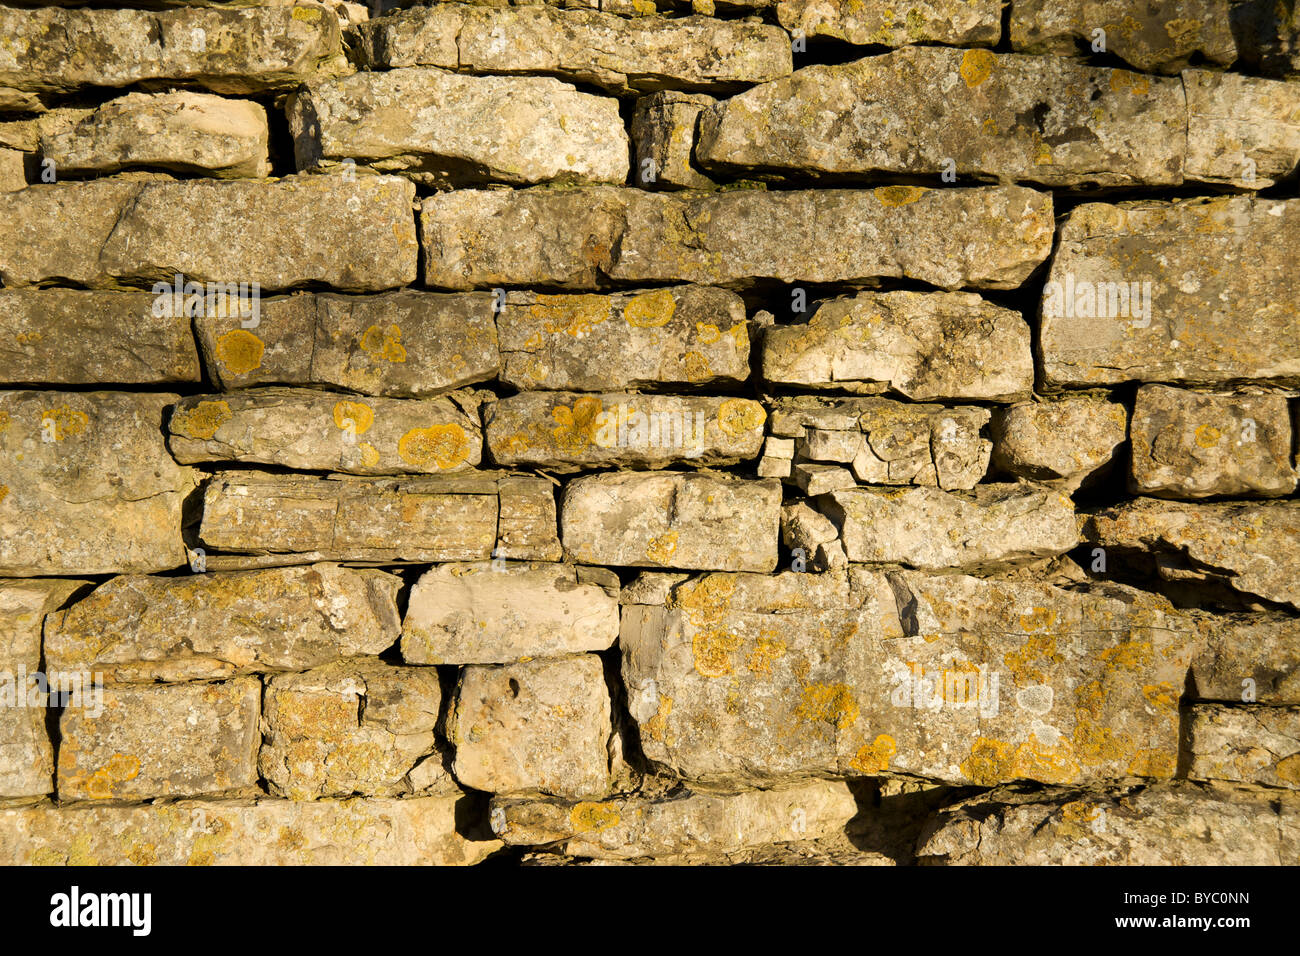 A dry stone wall built with Cotswold stone, Newbold-on-Stour, Warwickshire, England, UK Stock Photo